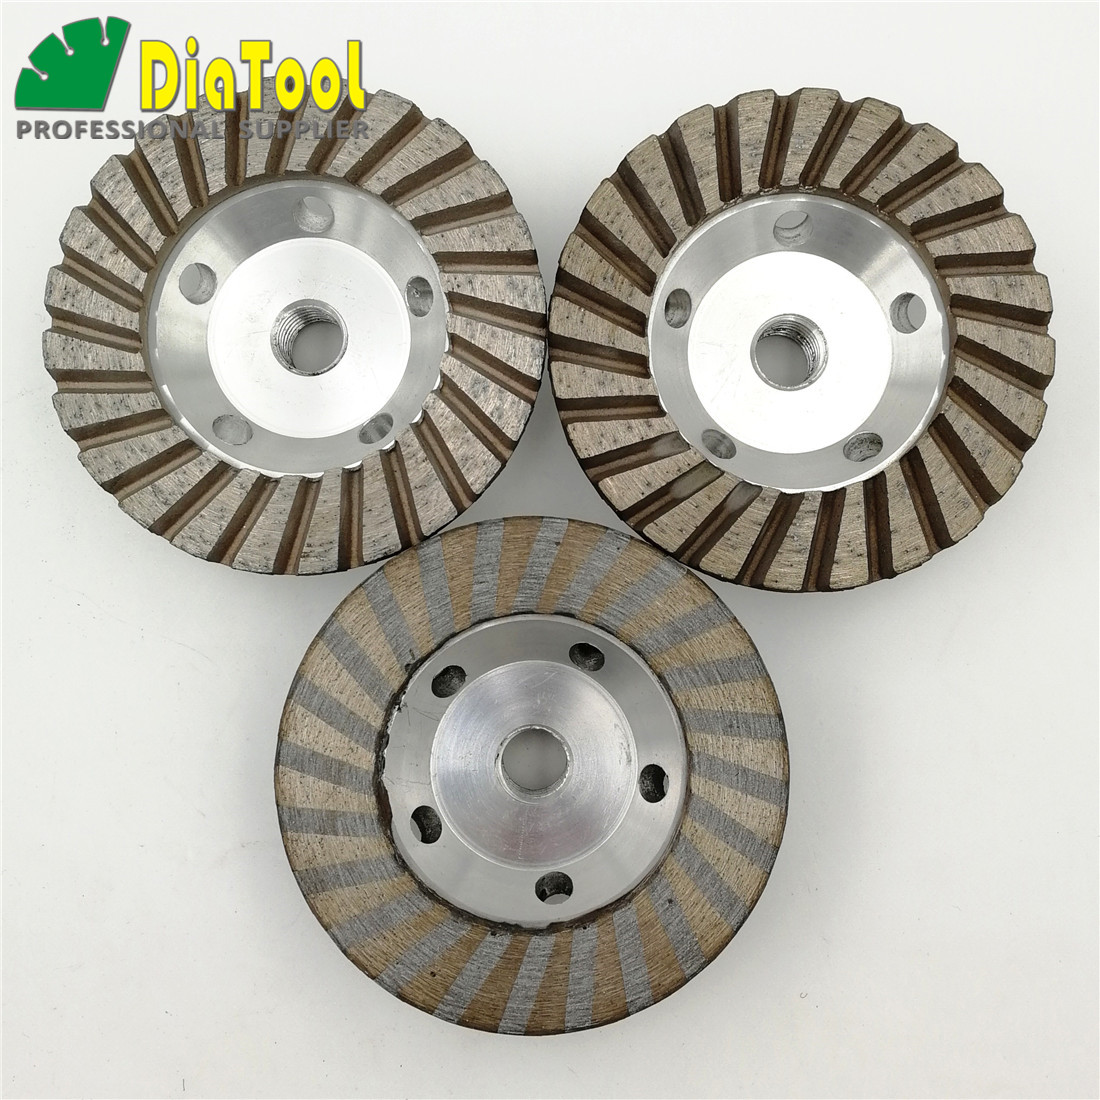 DIATOOL 3pcs Diameter 100mm Aluminum Based Grinding Cup Wheel 5/8-11 Thread 4 inch Diamond Grinding disc Cutting Granite marble [m14 thread] 5 ncctec diamond aluminum matrix sintered grinding disc 125mm stone turbo grinding cup wheel free shipping